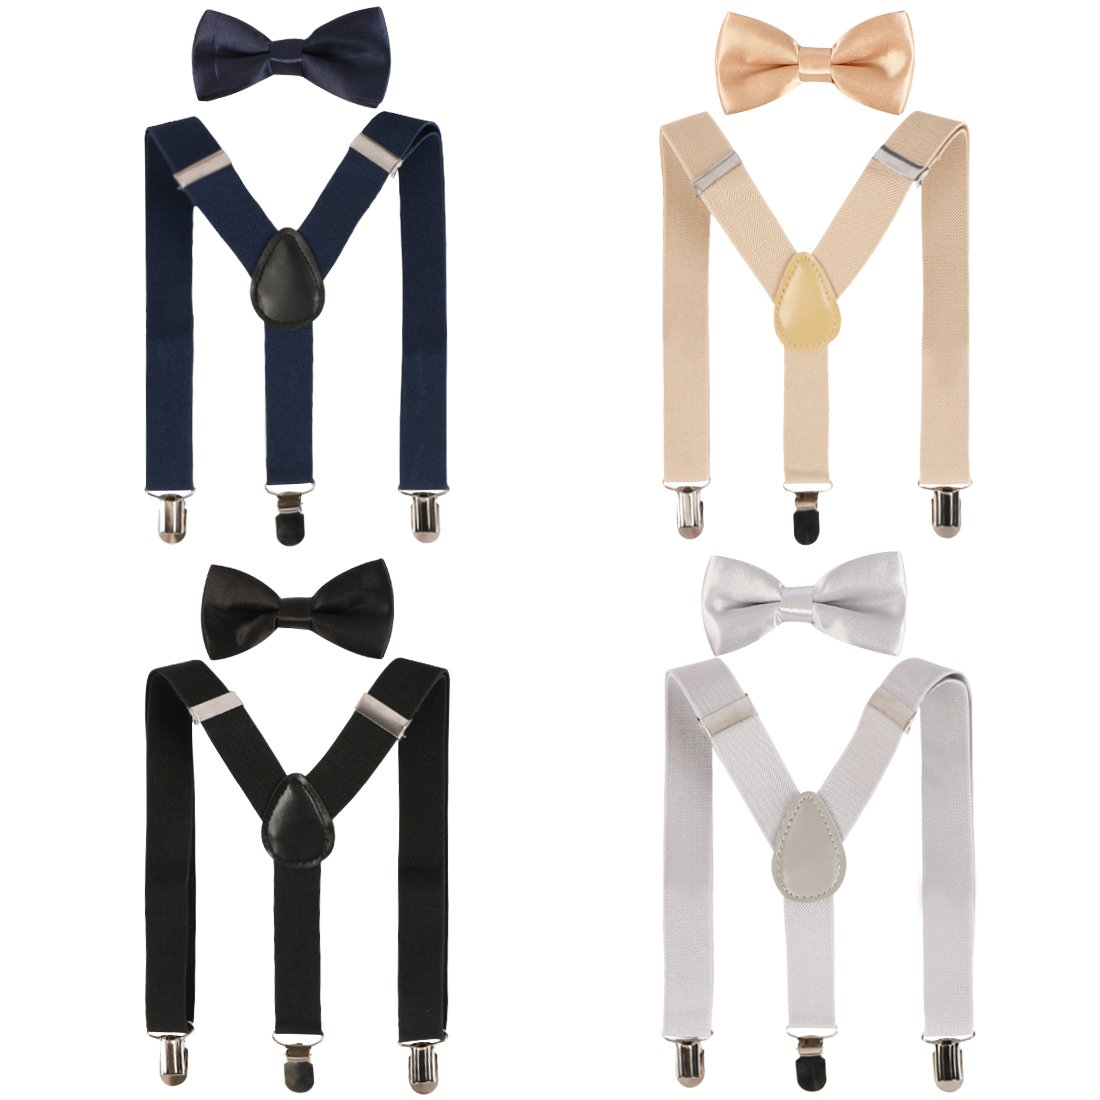 kilofly 4 Sets Boys Pre-tied Adjustable Neck Bow Ties + Elastic Suspenders Pack BBA522set4